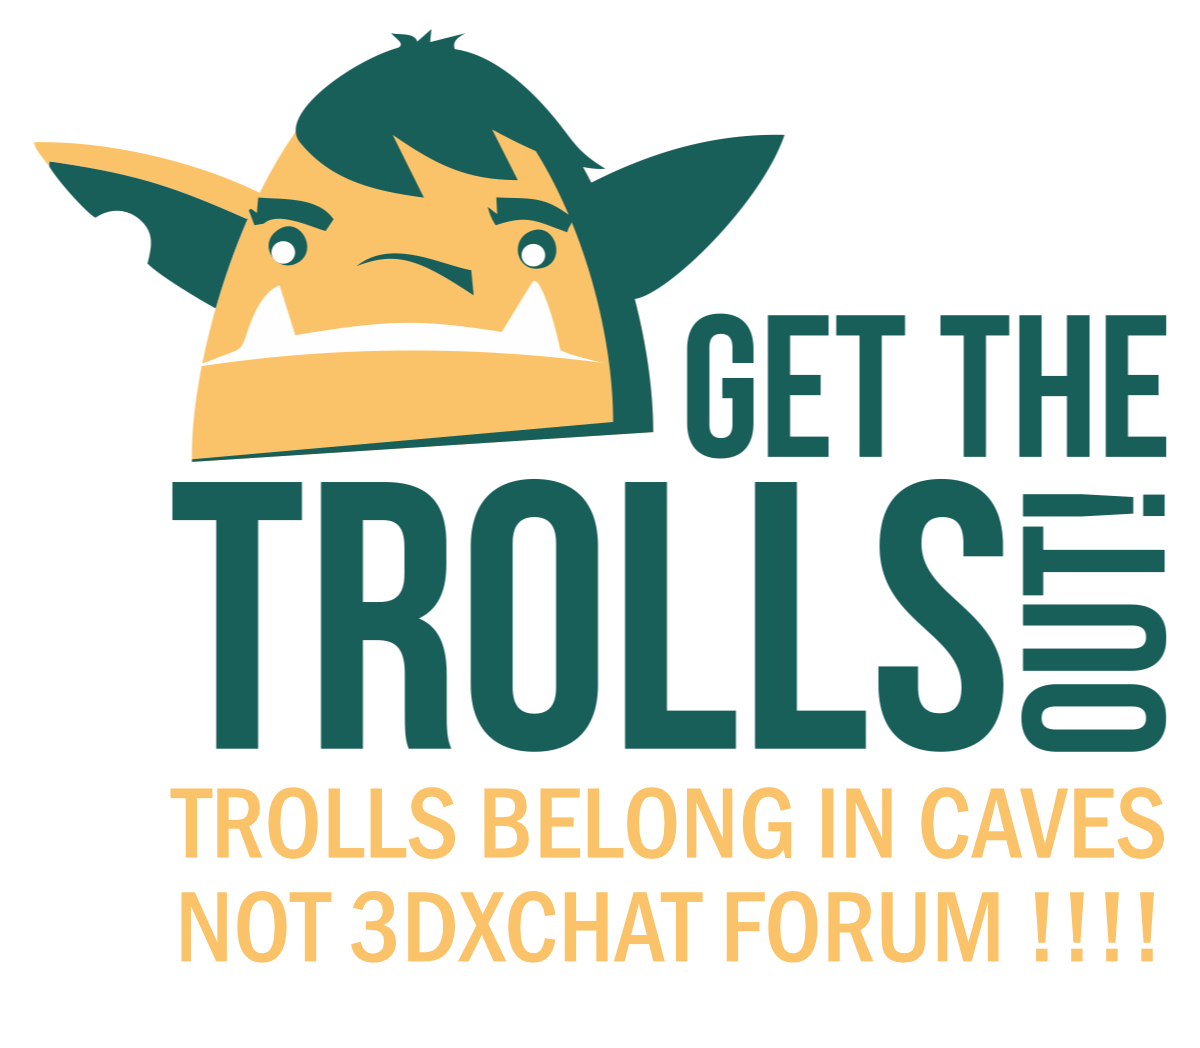 trolls-out7yk0g.jpg